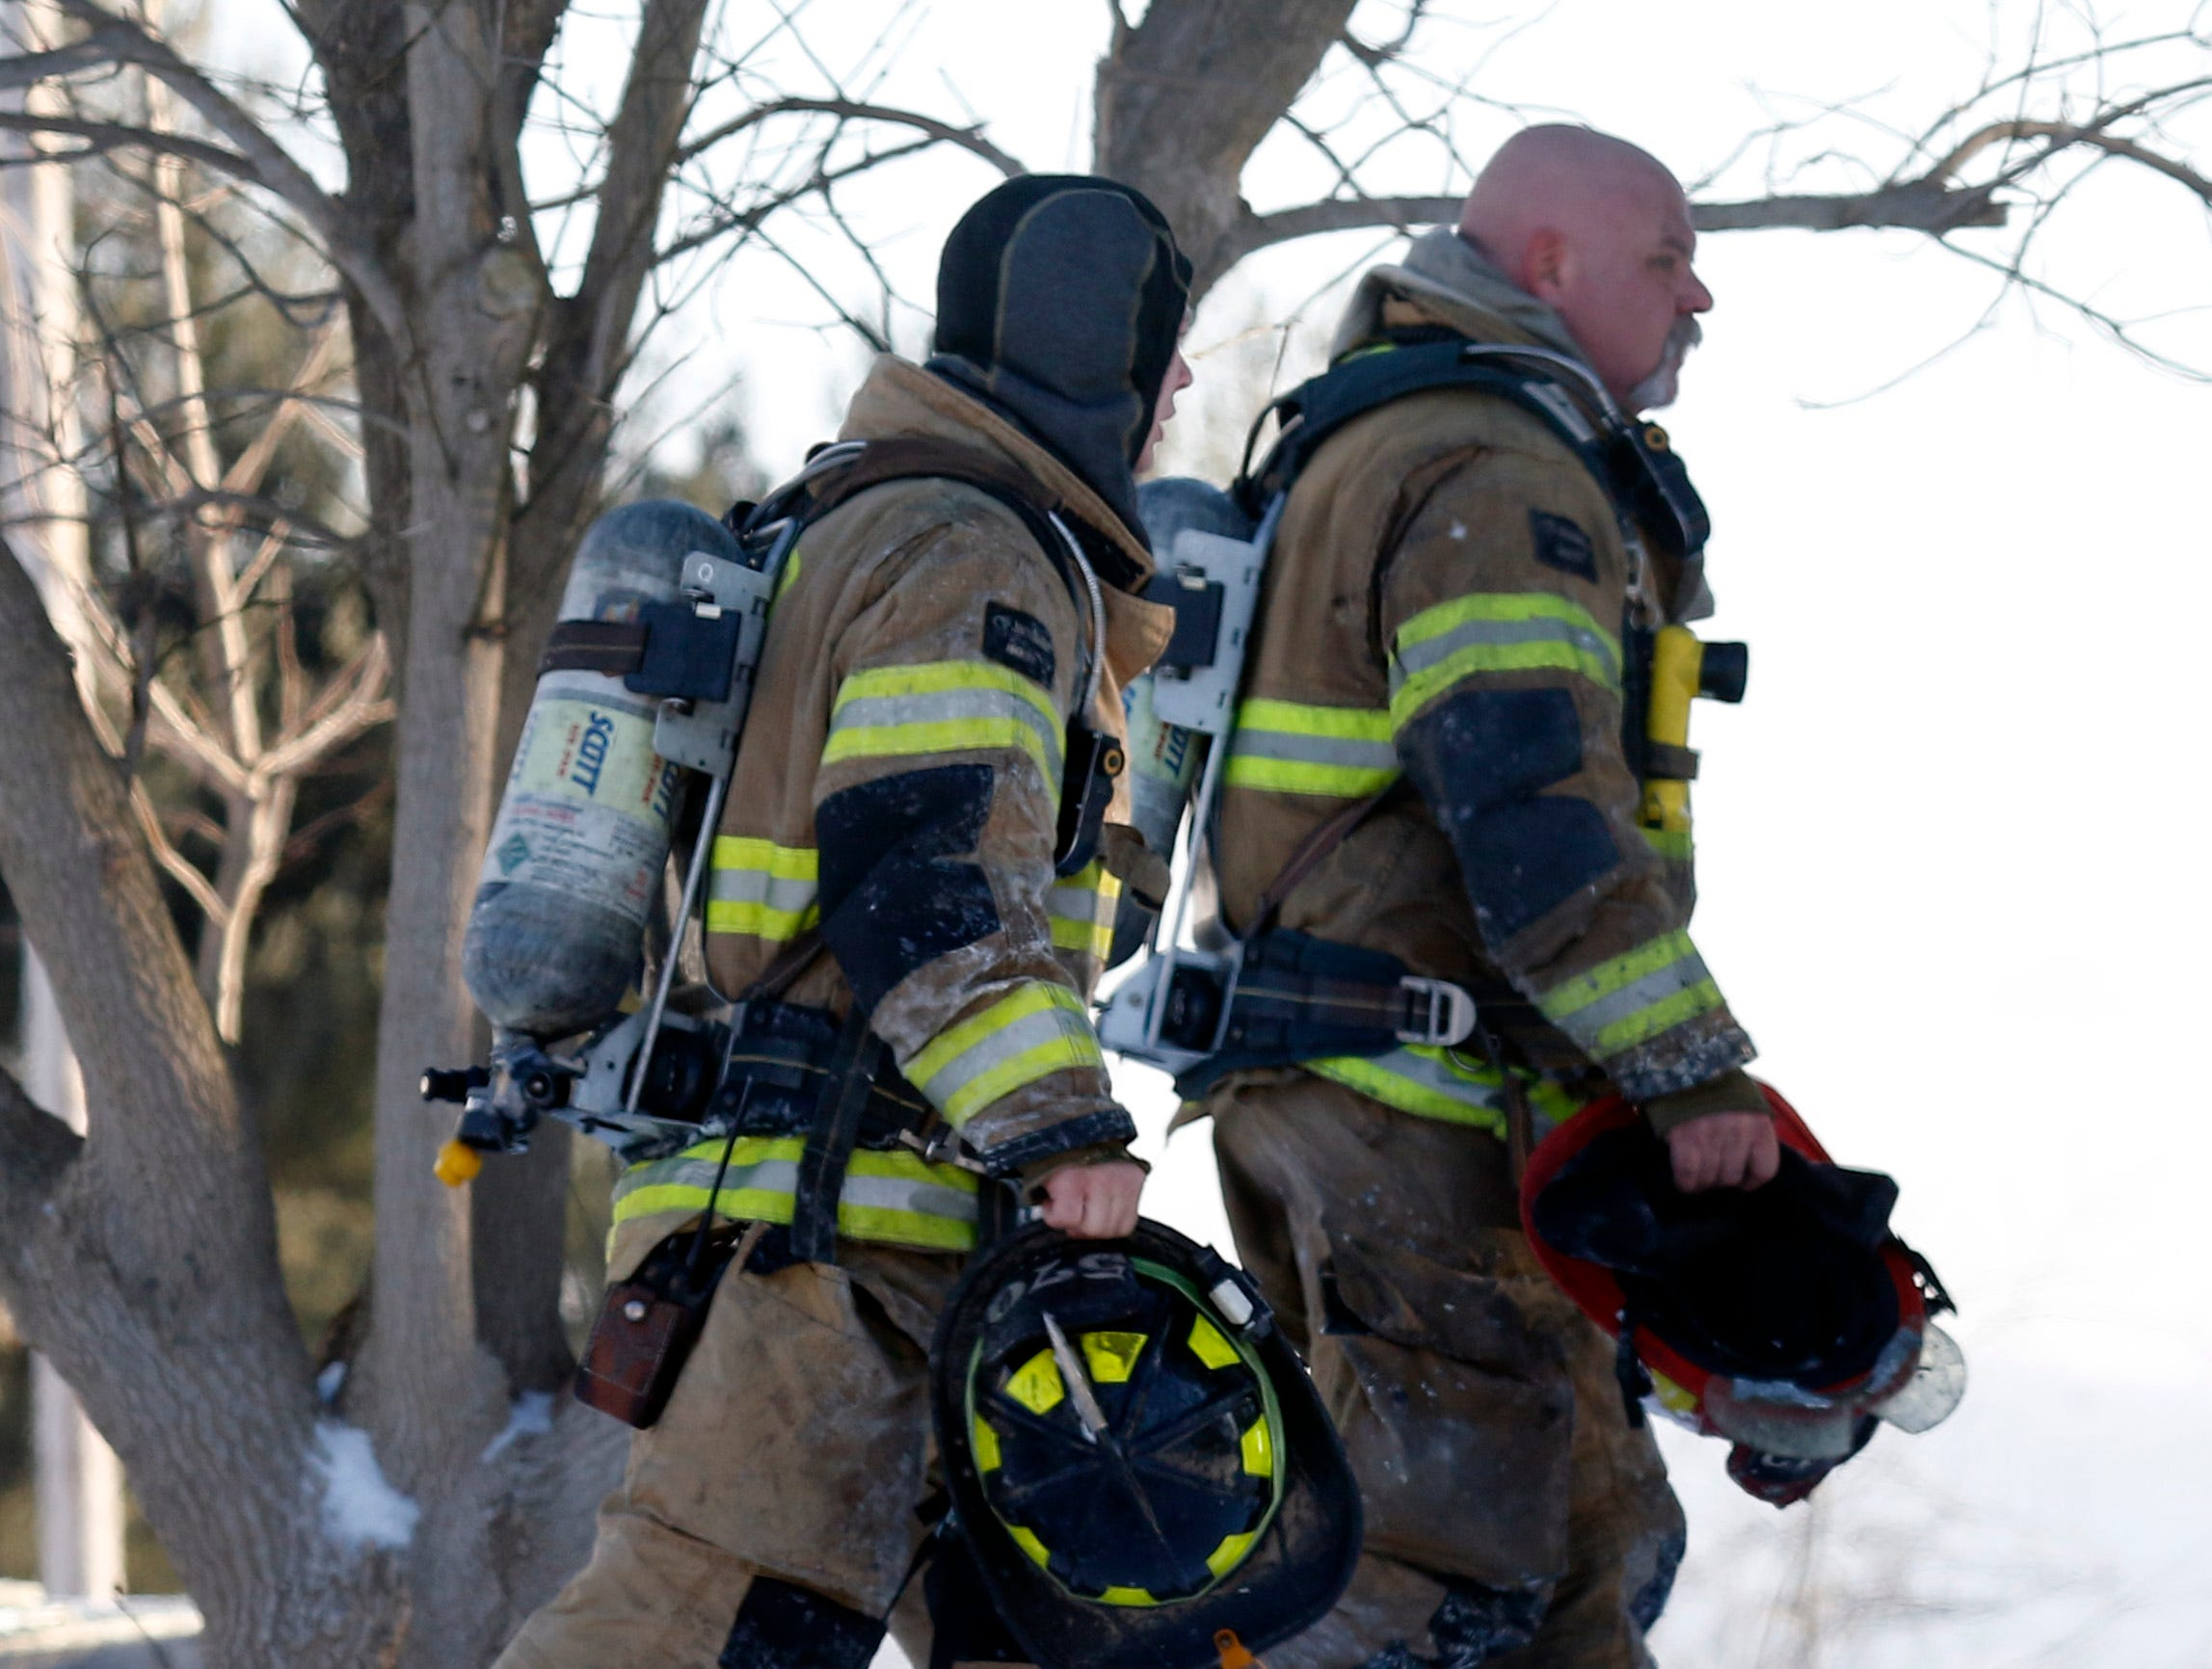 Fire destroyed a home, garage and several vehicles Wednesday morning, Jan. 30, 2019, at 9640 Old Rushville Road in Rushcreek Township.  Bremen-Rushcreek Township Fire Chief William Duvall said the fire started in the home's garage, burning it to the ground, and spreading into the home itself. No one was injured in the fire.